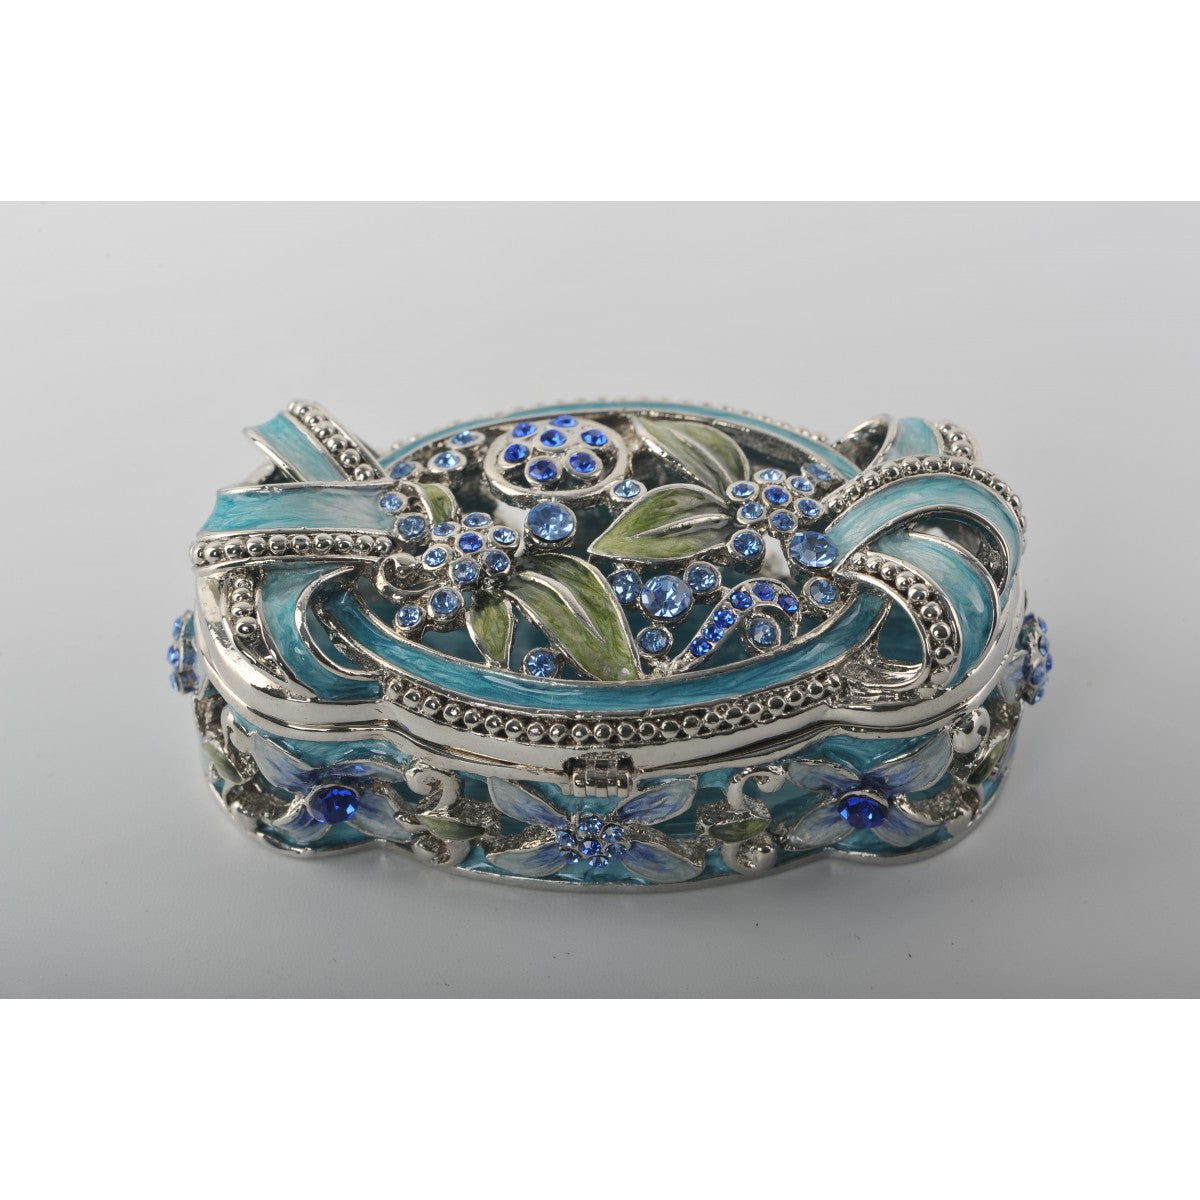 Faberge Style Decorative Trinket Box by Keren Kopal